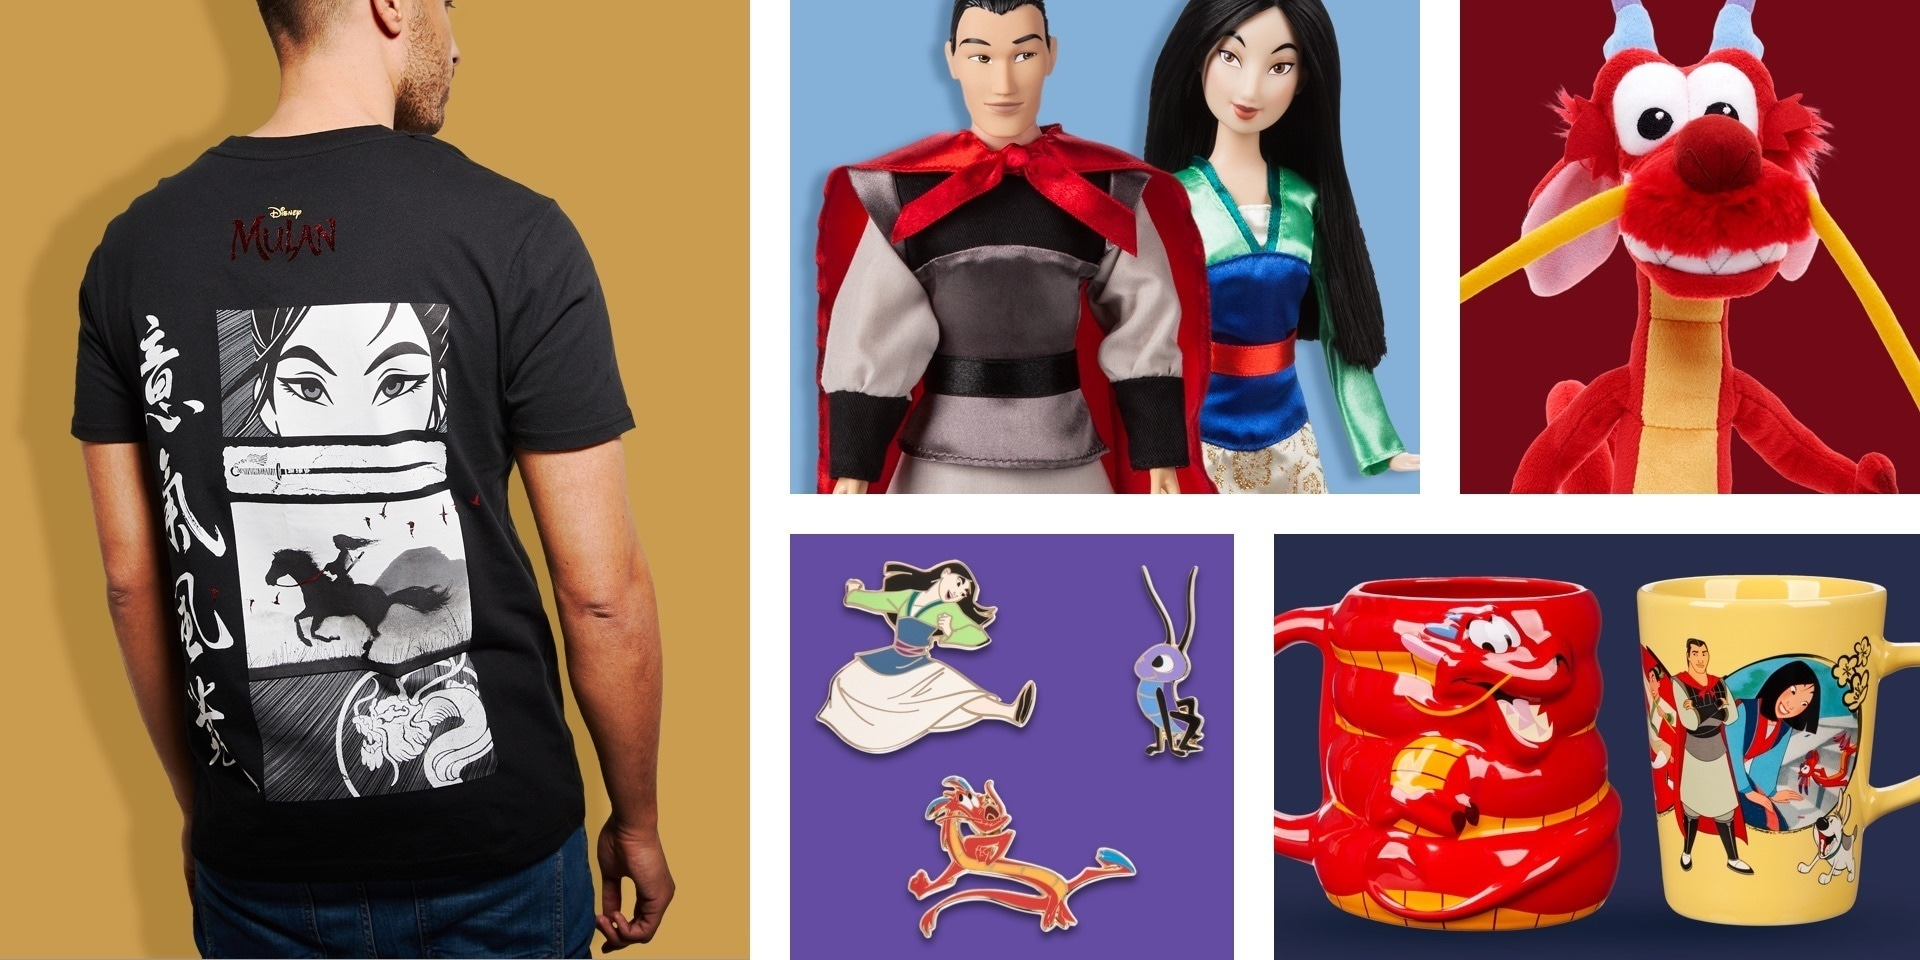 A selection of products inspired by Mulan